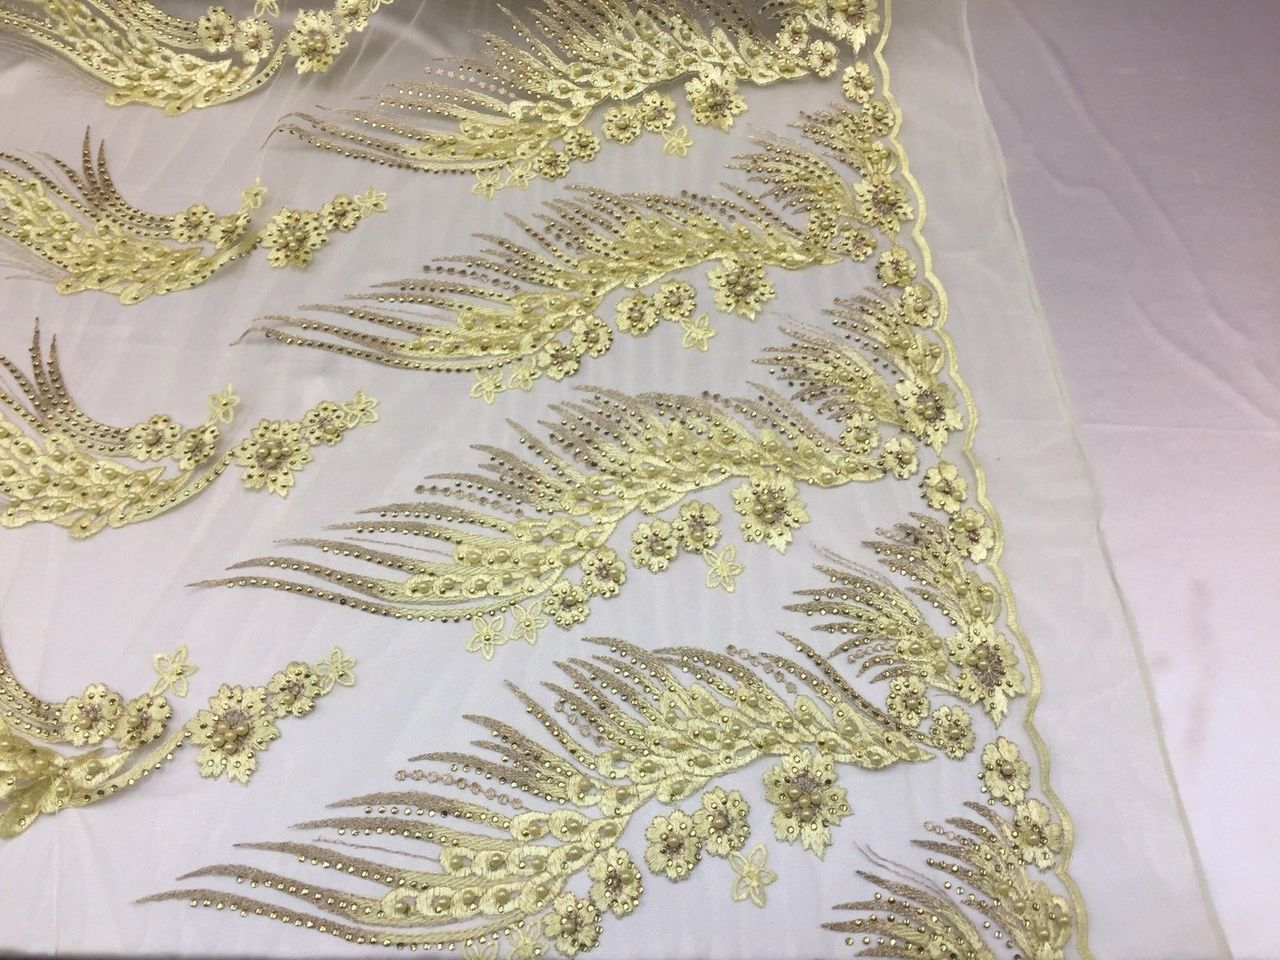 Her Majesty Designs Super Luxurious Beaded Bridal Wedding Mesh Lace Yellow.1 Yrd - KINGDOM OF FABRICS